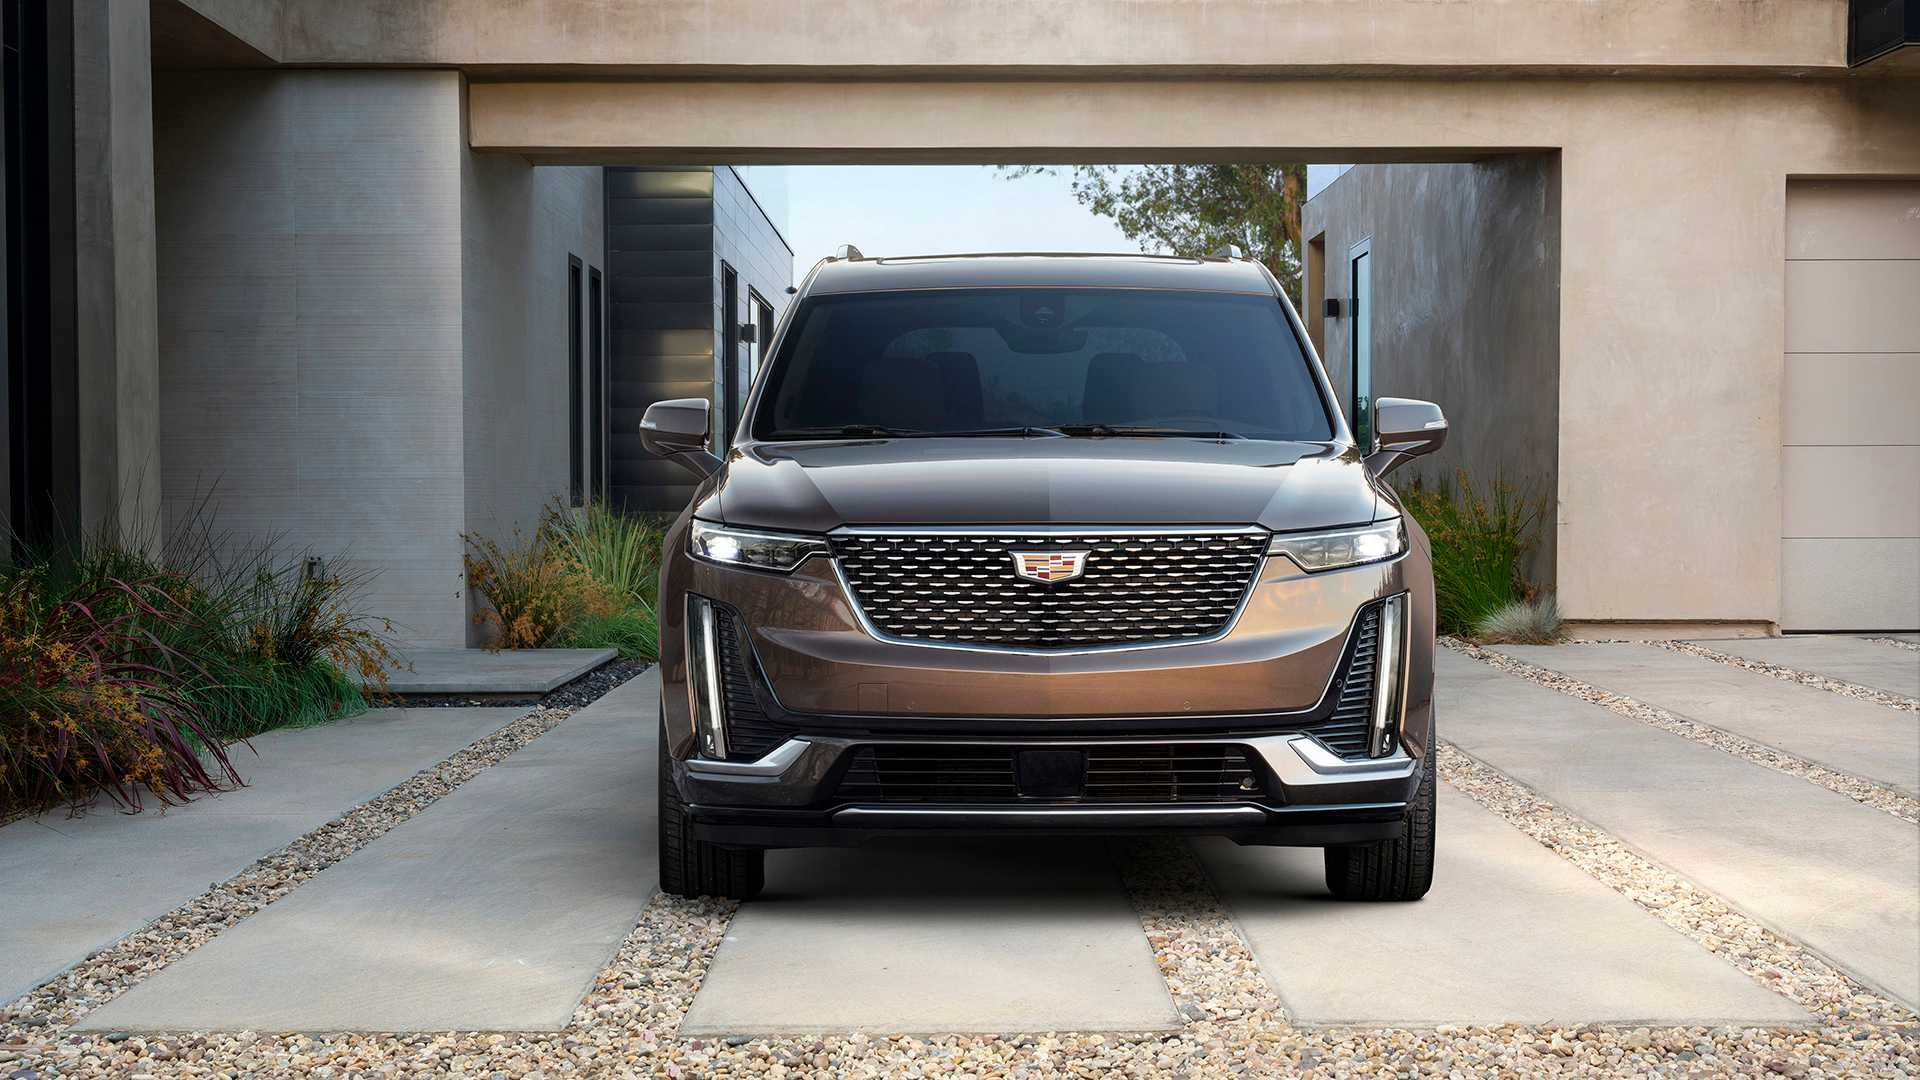 2020 cadillac xt6 revealed ahead of world debut at naias autoevolution. Black Bedroom Furniture Sets. Home Design Ideas